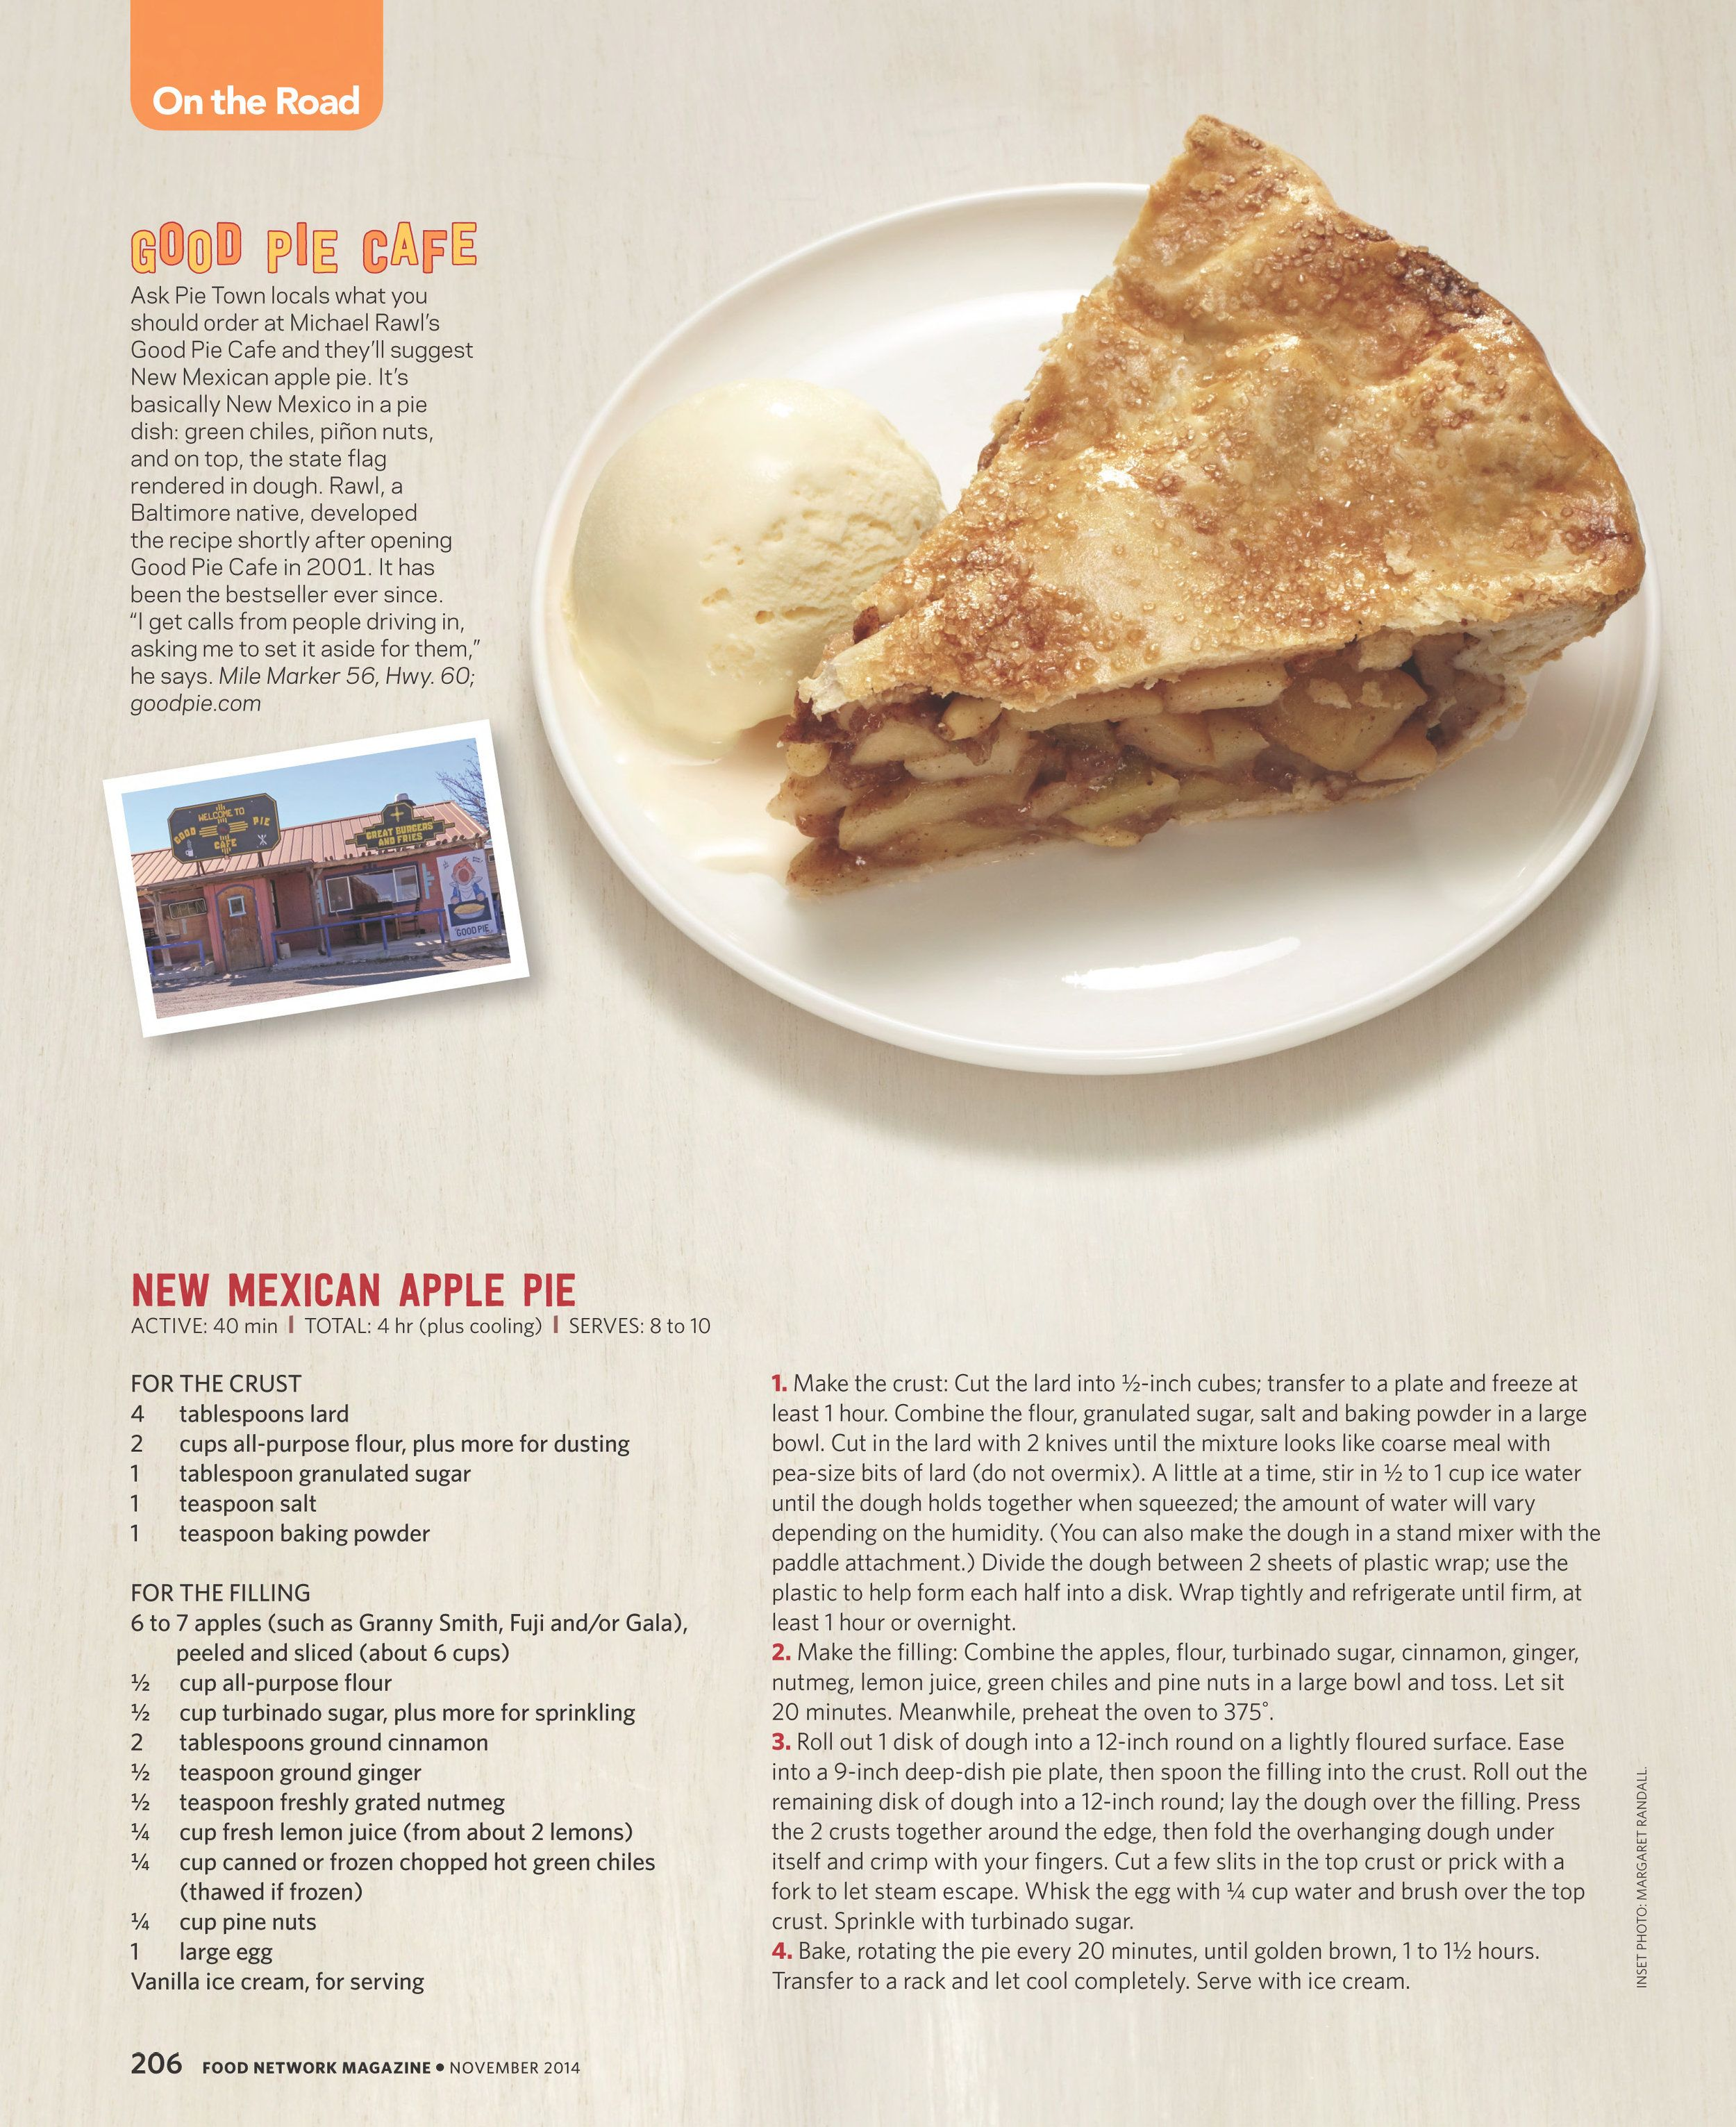 Apple pie photograph by devon jarvis for food network magazine apple pie photograph by devon jarvis for food network magazine forumfinder Image collections